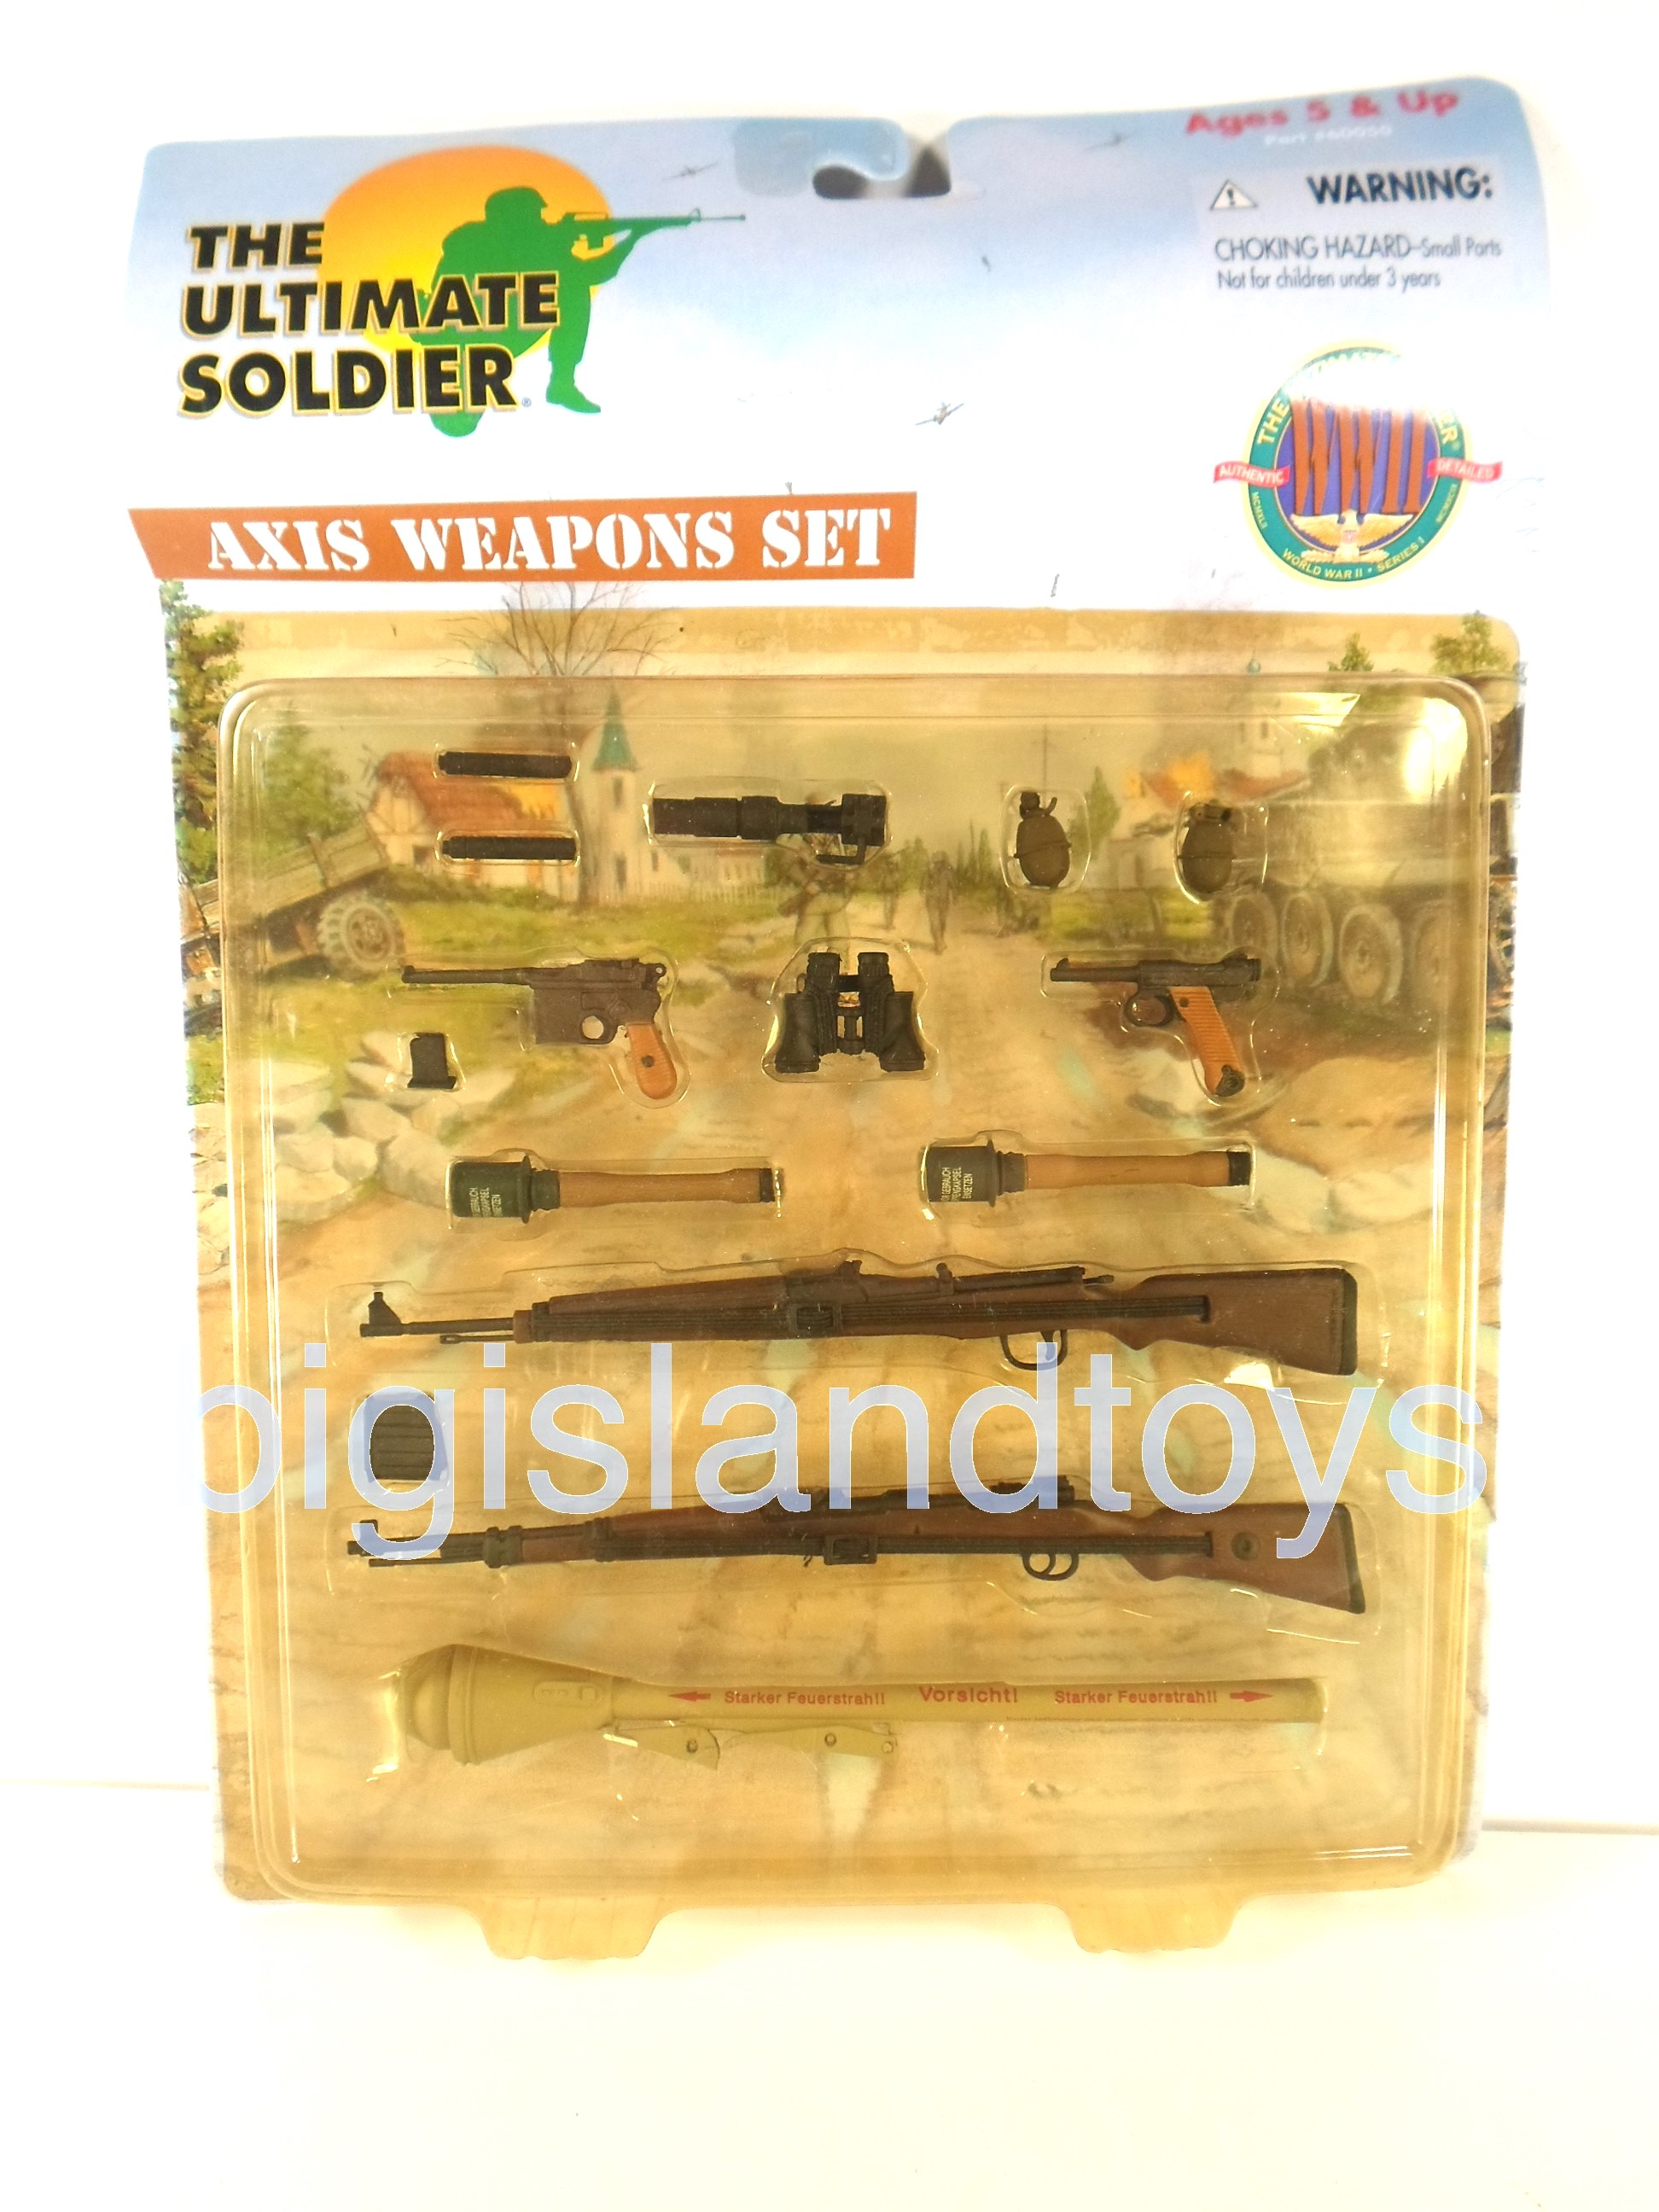 The Ultimate Soldier     Axis Weapons Set